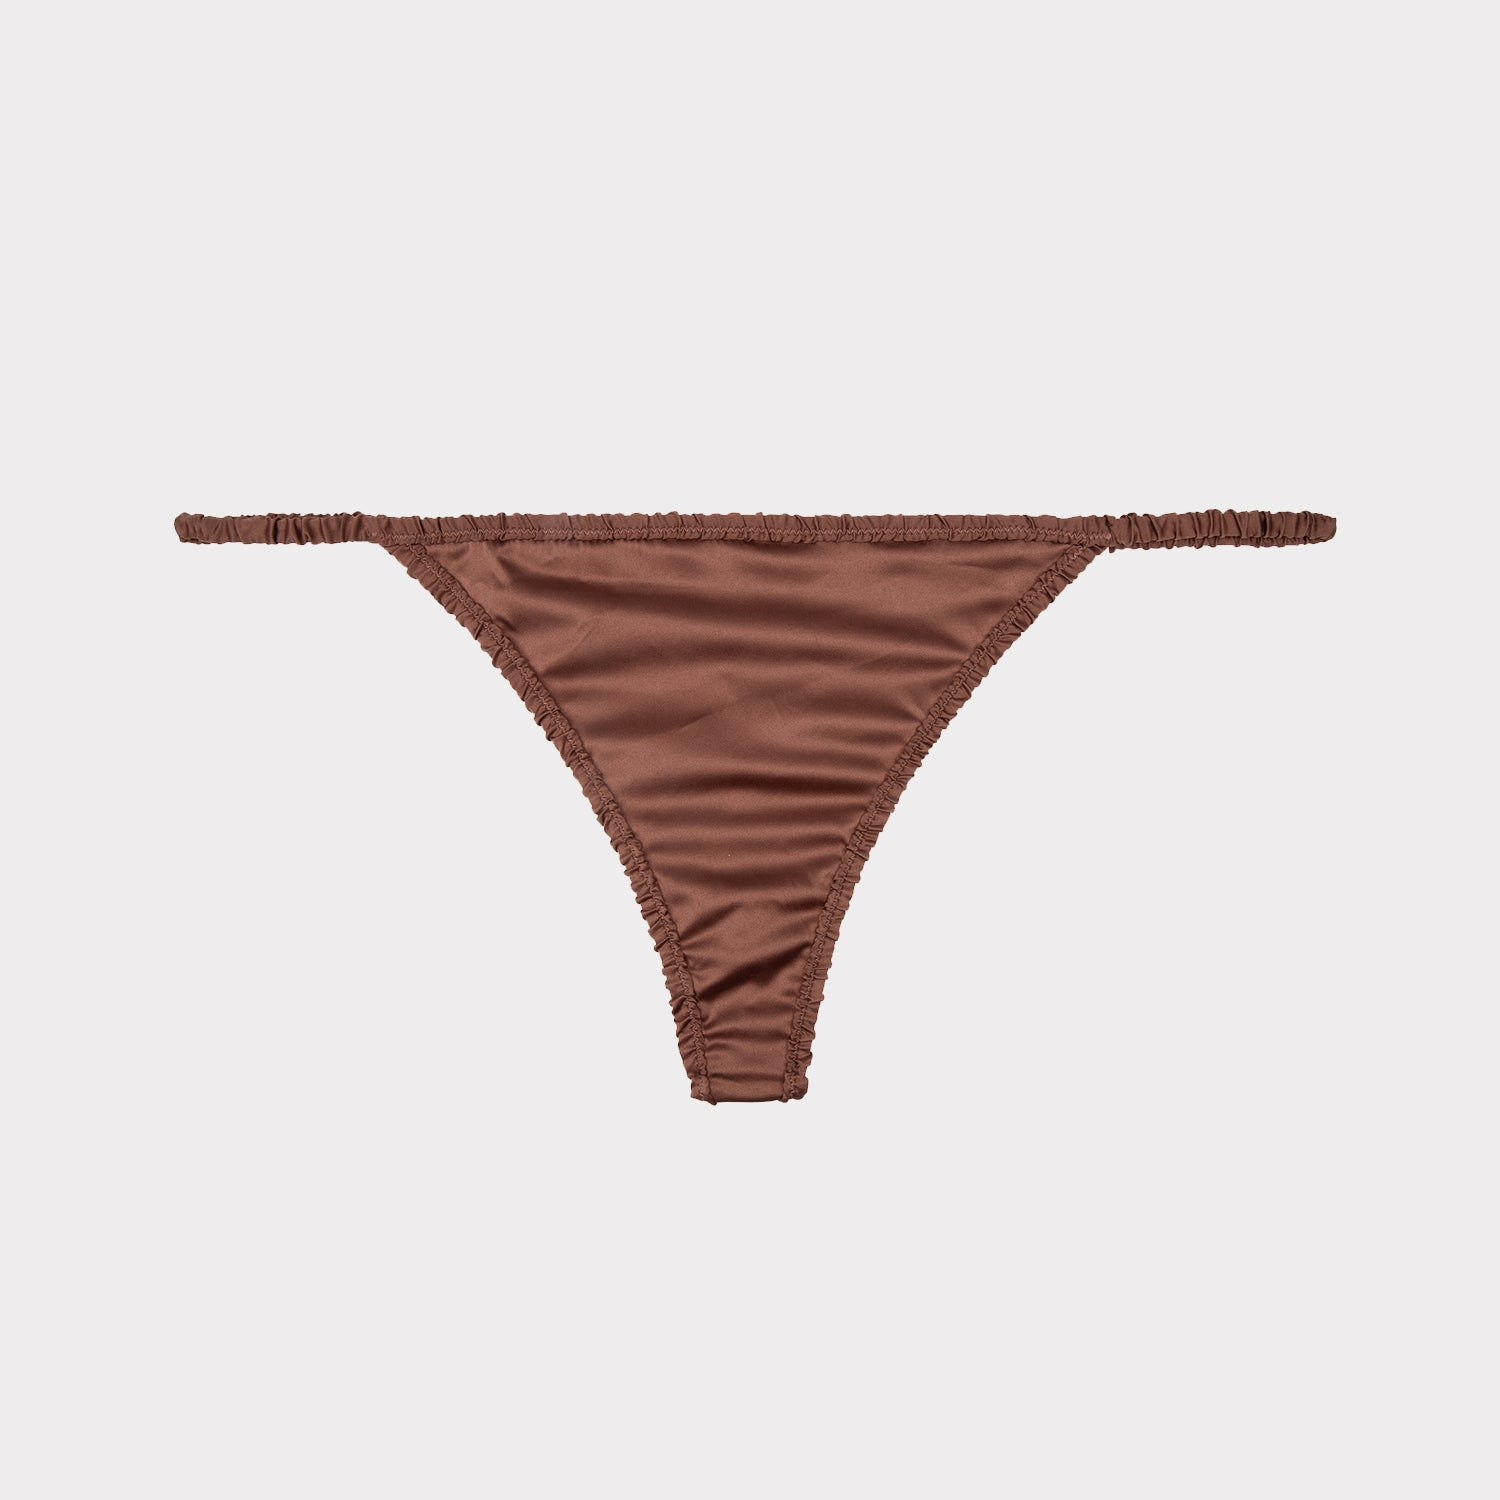 roomie swiss chocolate luxury thong in brown satin by Love Stories at Secret Location